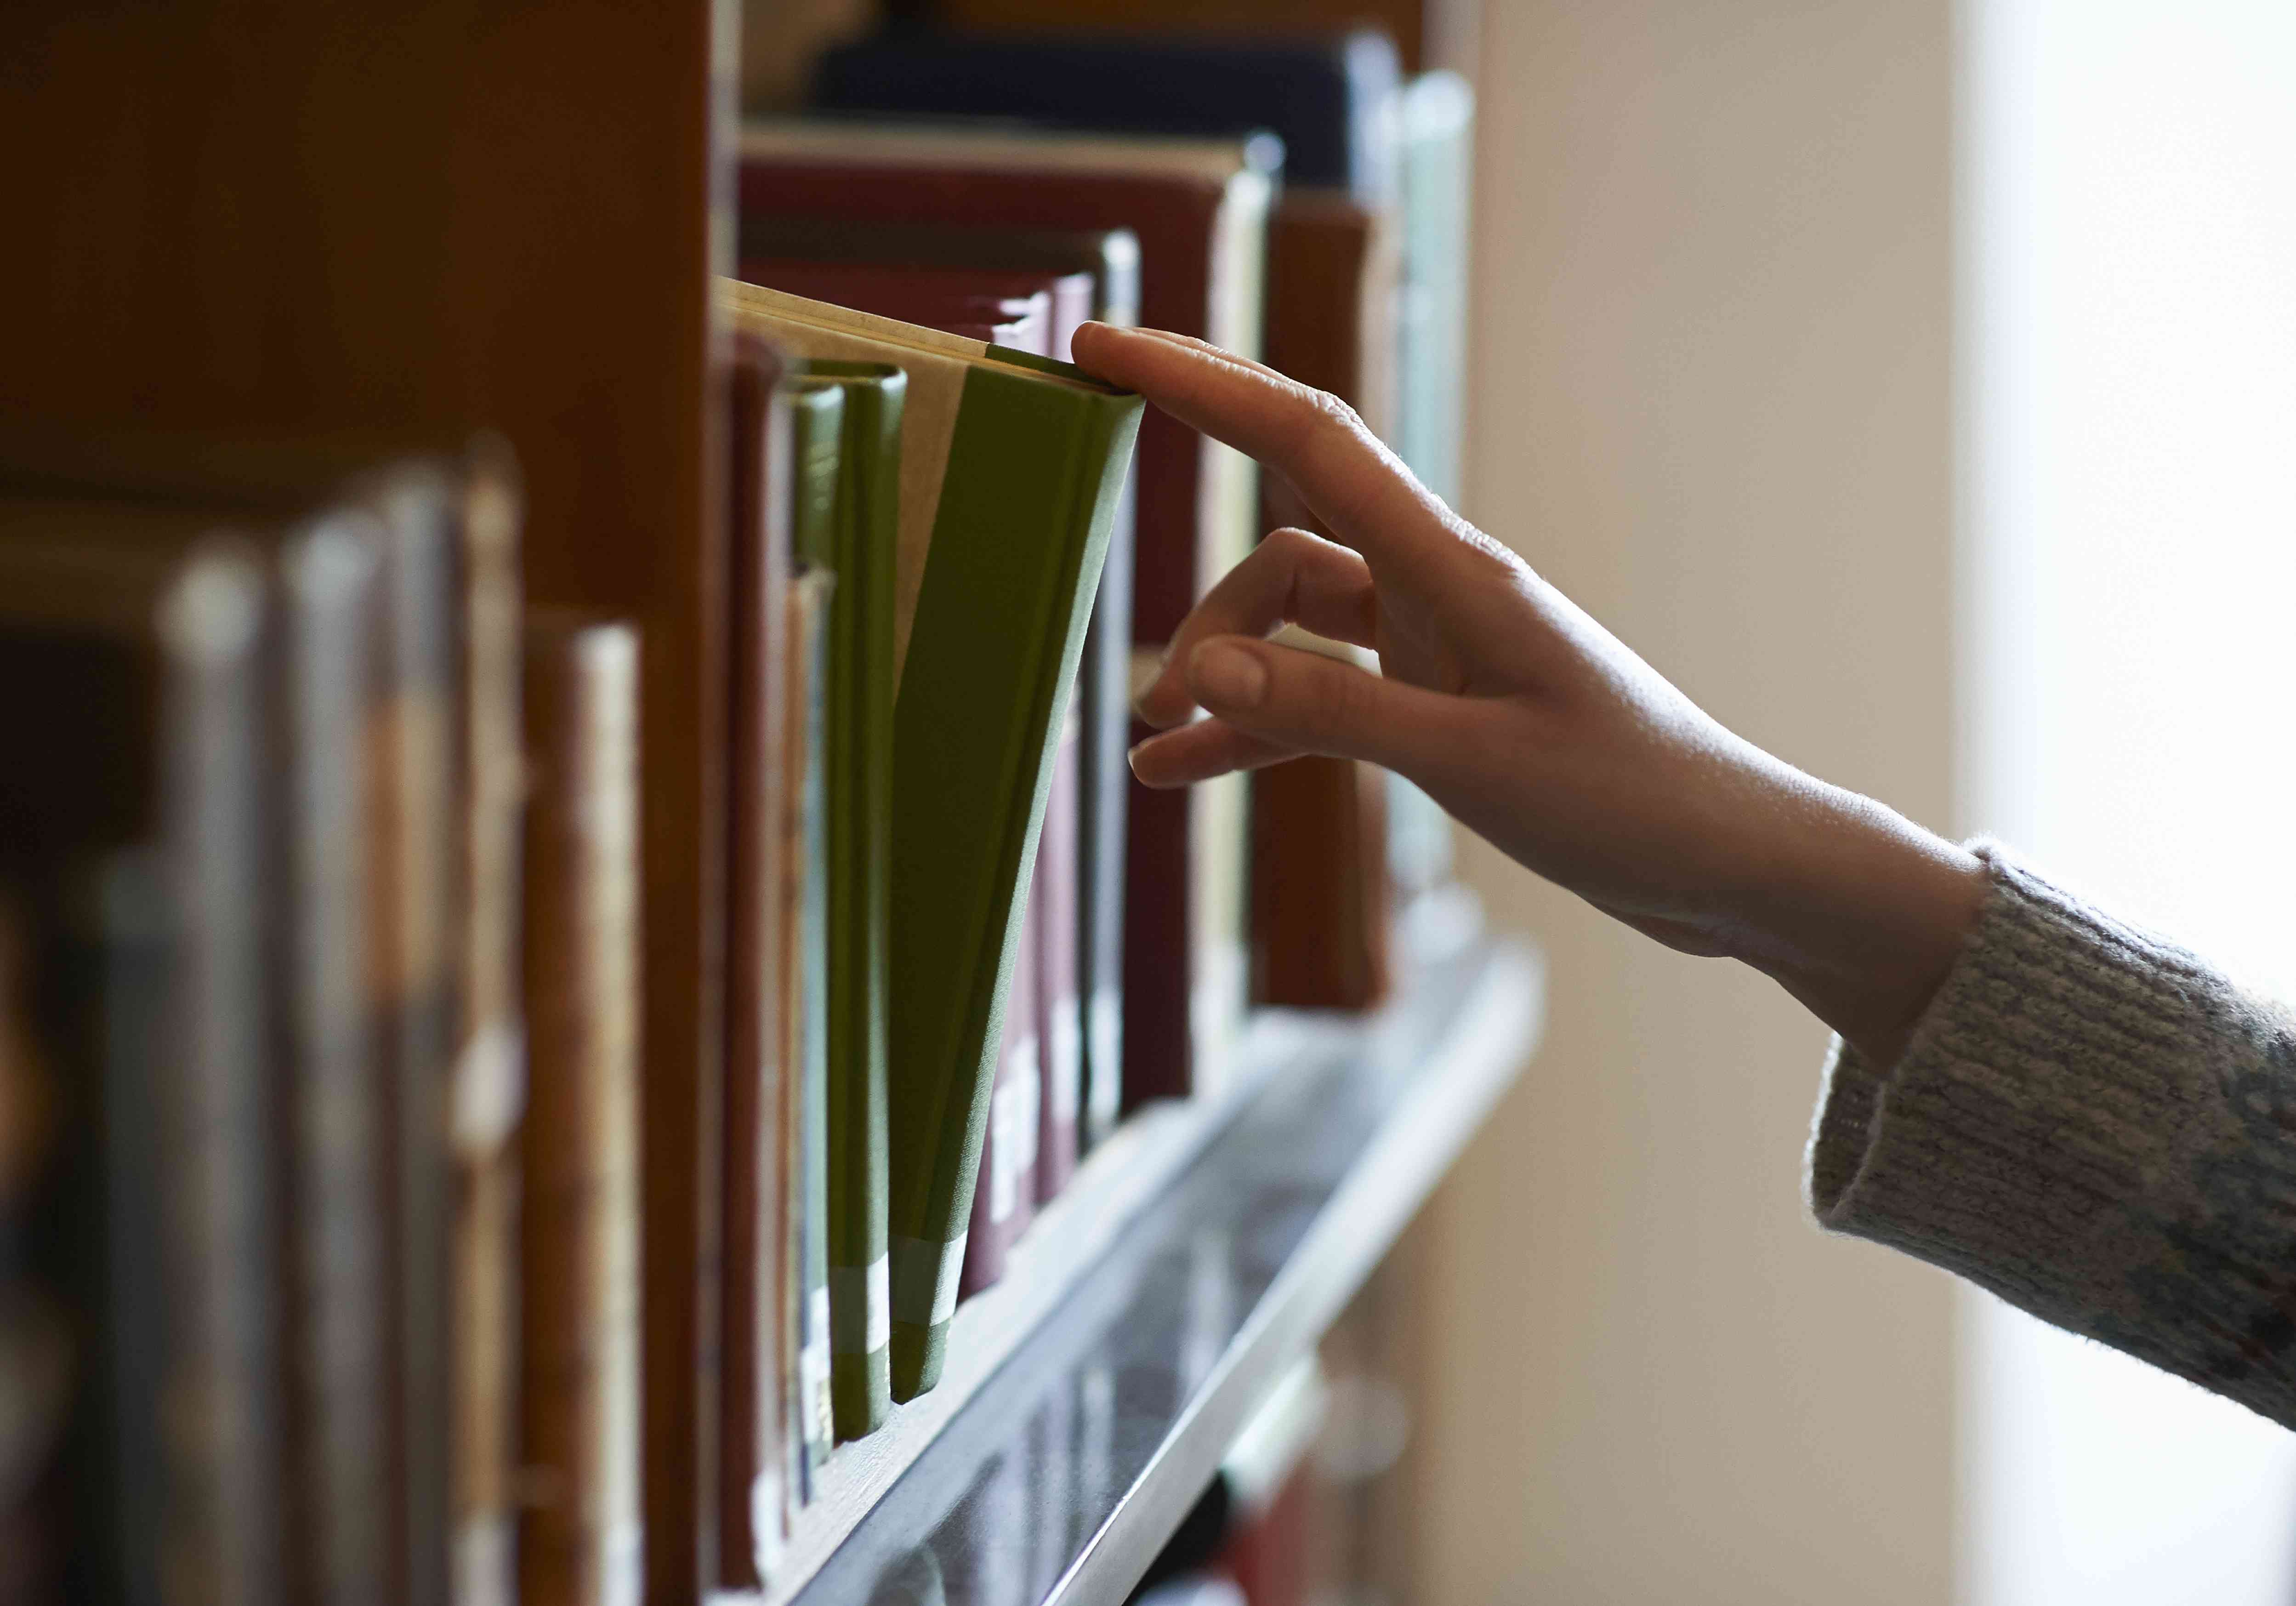 Hand taking old book from shelf in library.